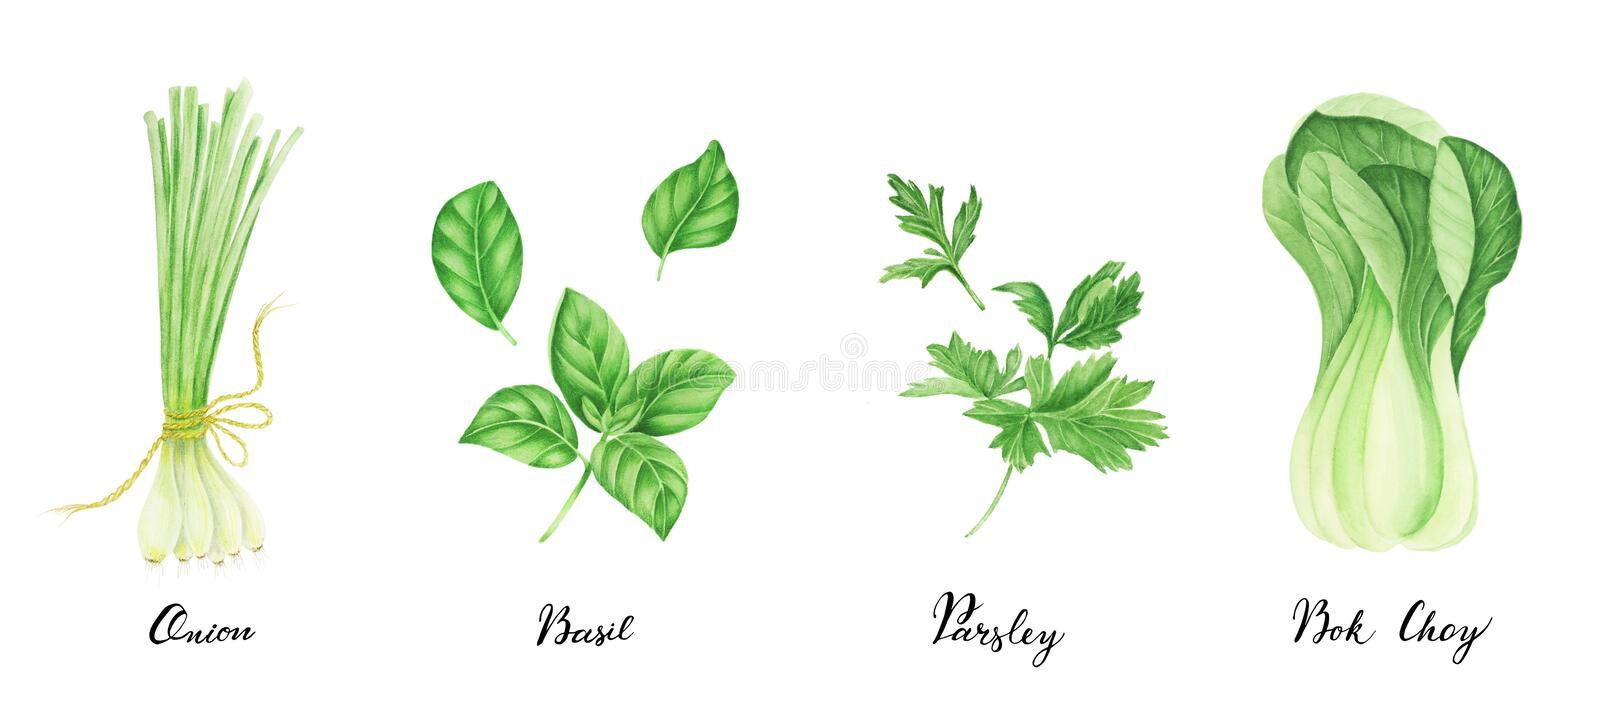 Set of green vegetables with lettering: onion, parsley, basil and bok choy, watercolor painting. stock illustration